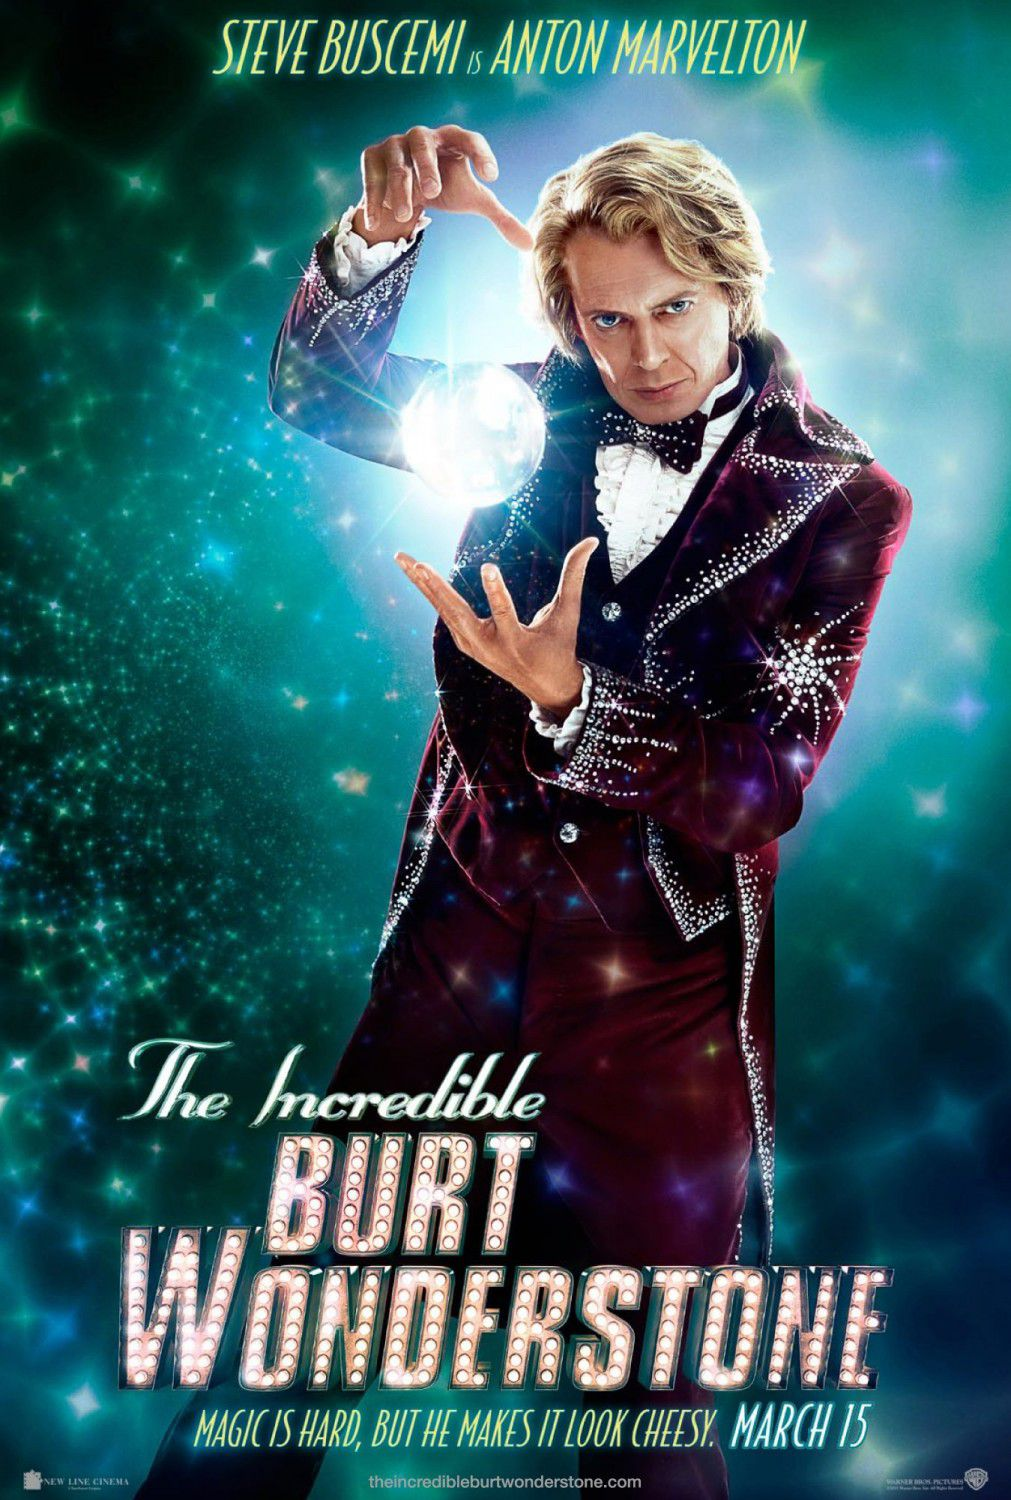 Incredible Burt Wonderstone - Steve Buscemi is Anton Marvelton